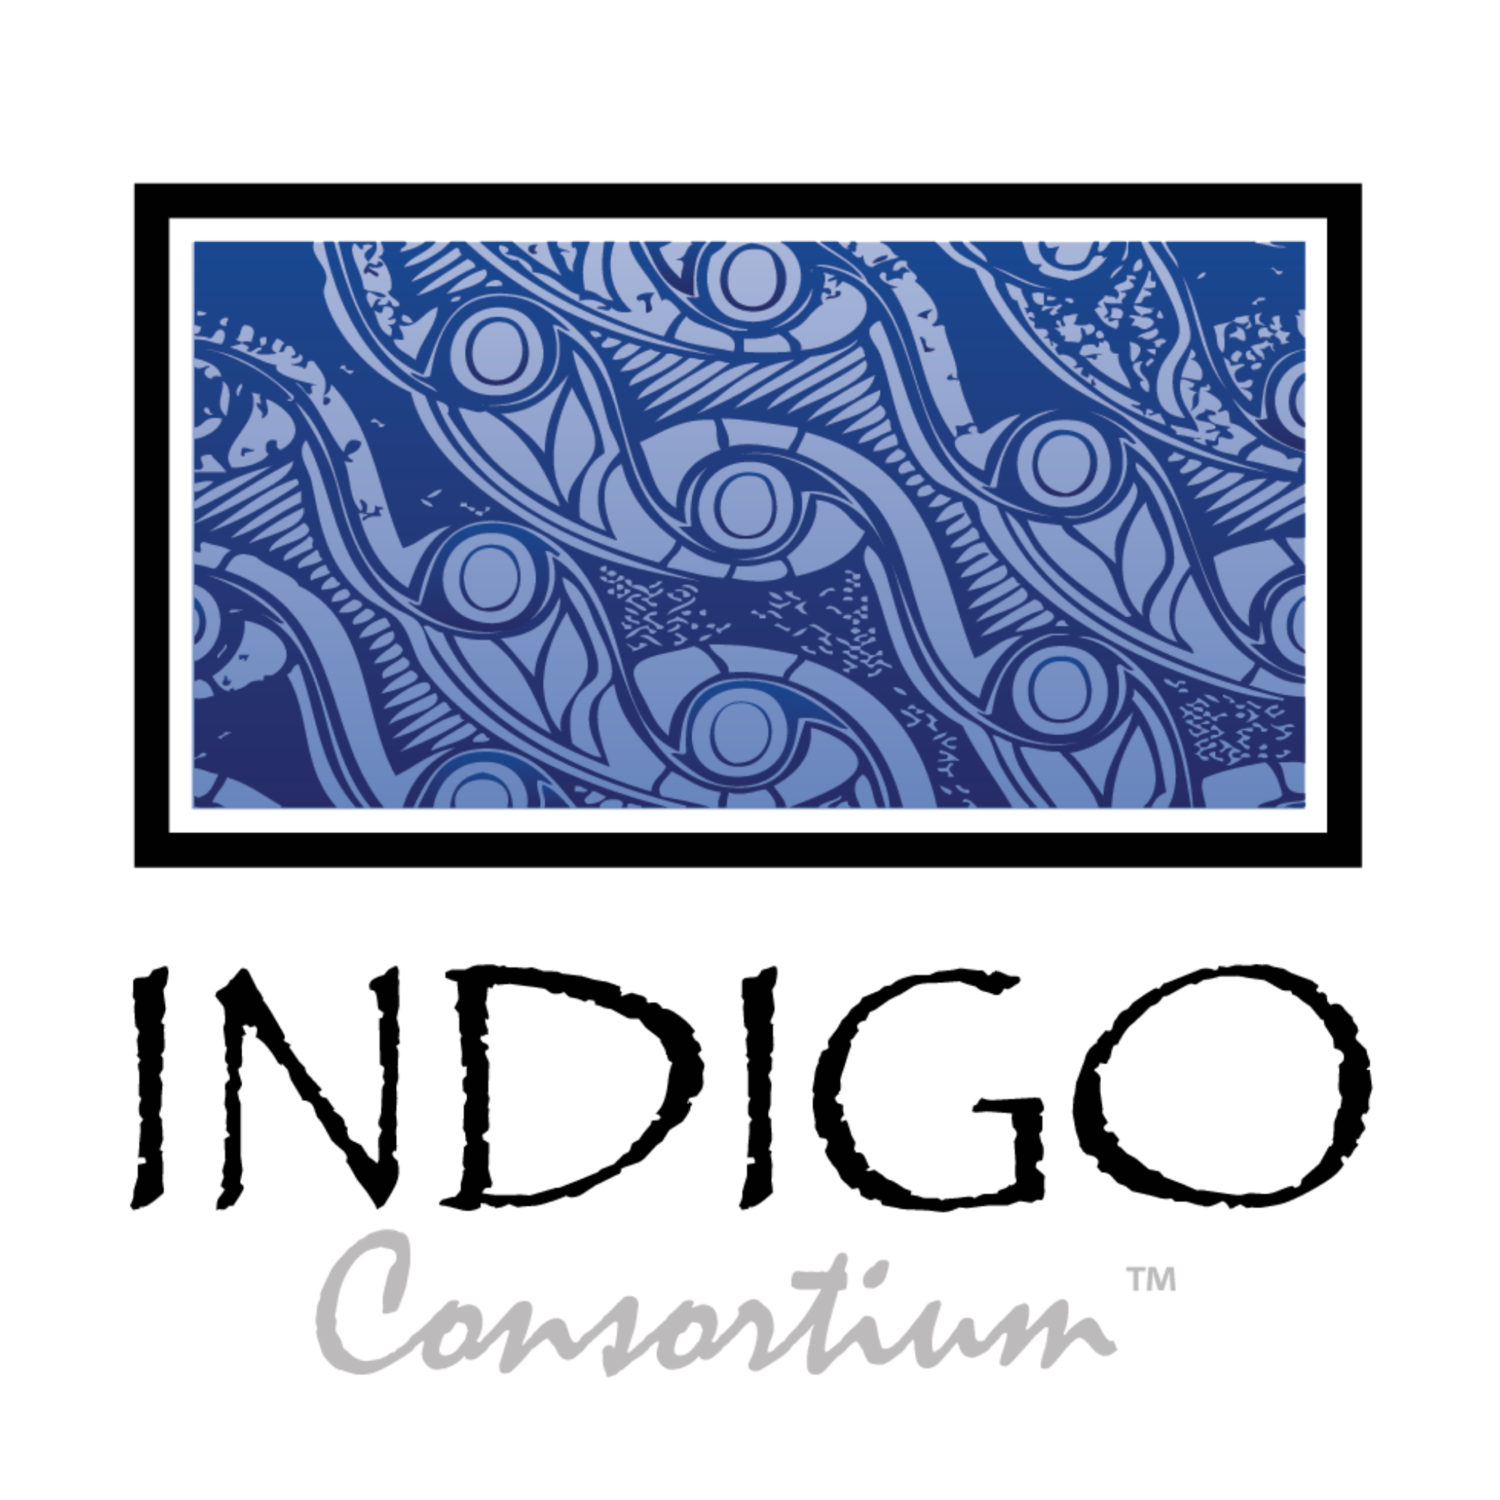 Women S Center Indigo Consortium